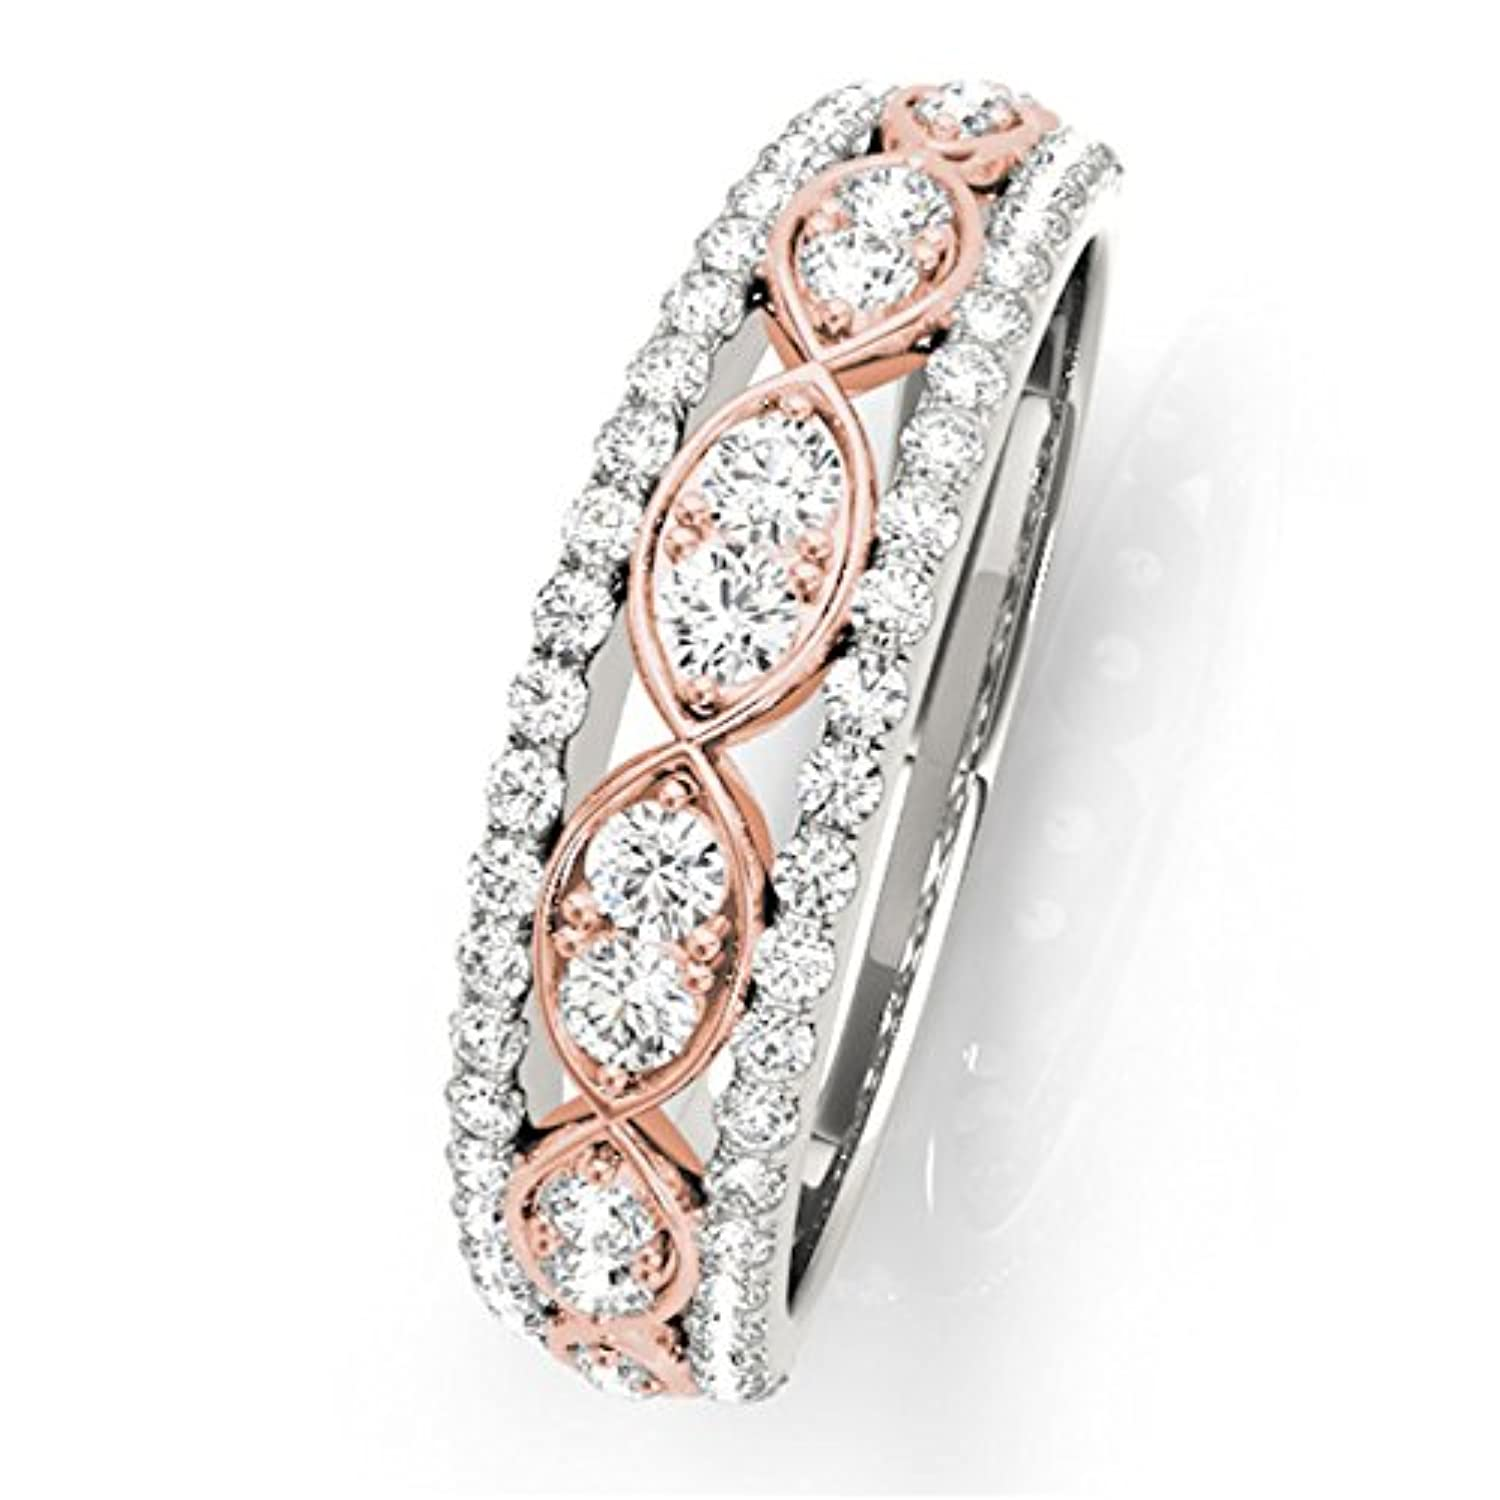 14K White and Rose Gold With 1/2 Ct Brilliant Diamond 0.50 Carat Round Untique Two-Tone Diamond Wedding Band for Ladies Bridal in Engagement